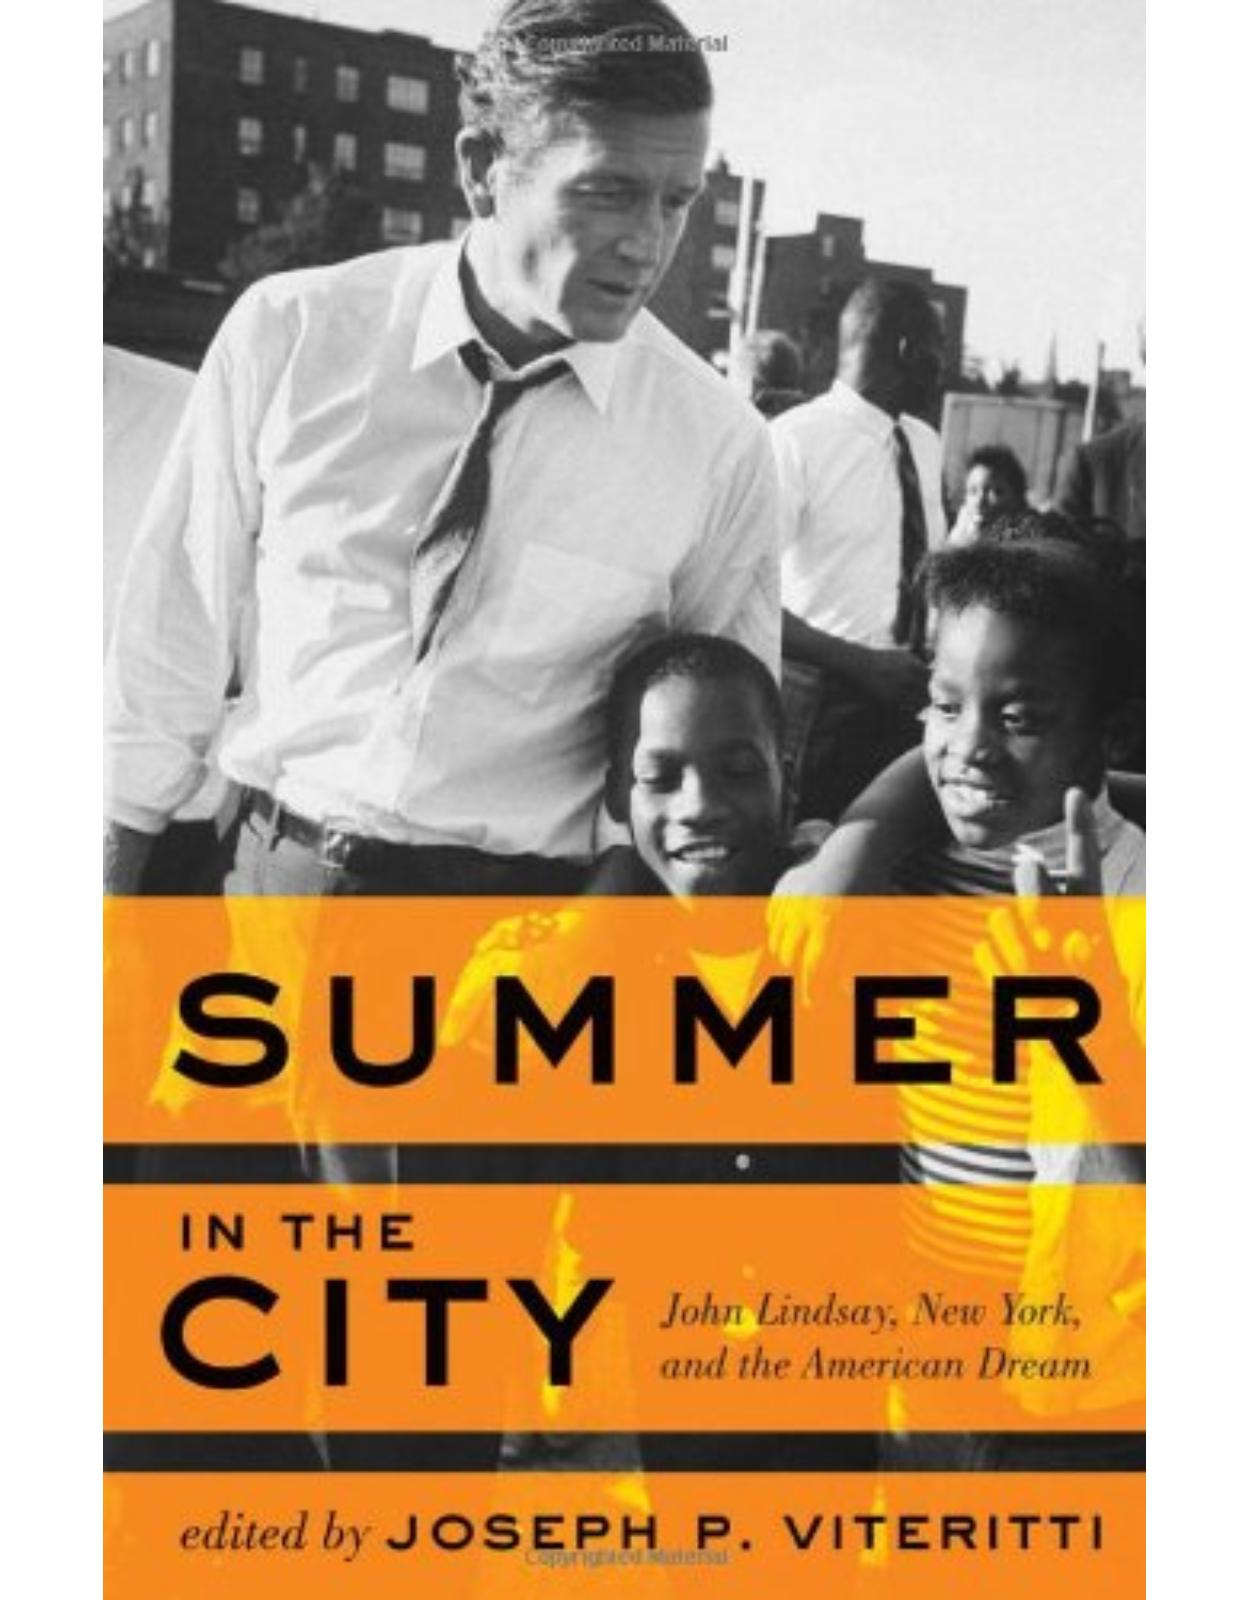 Summer in the City, John Lindsay, New York, and the American Dream